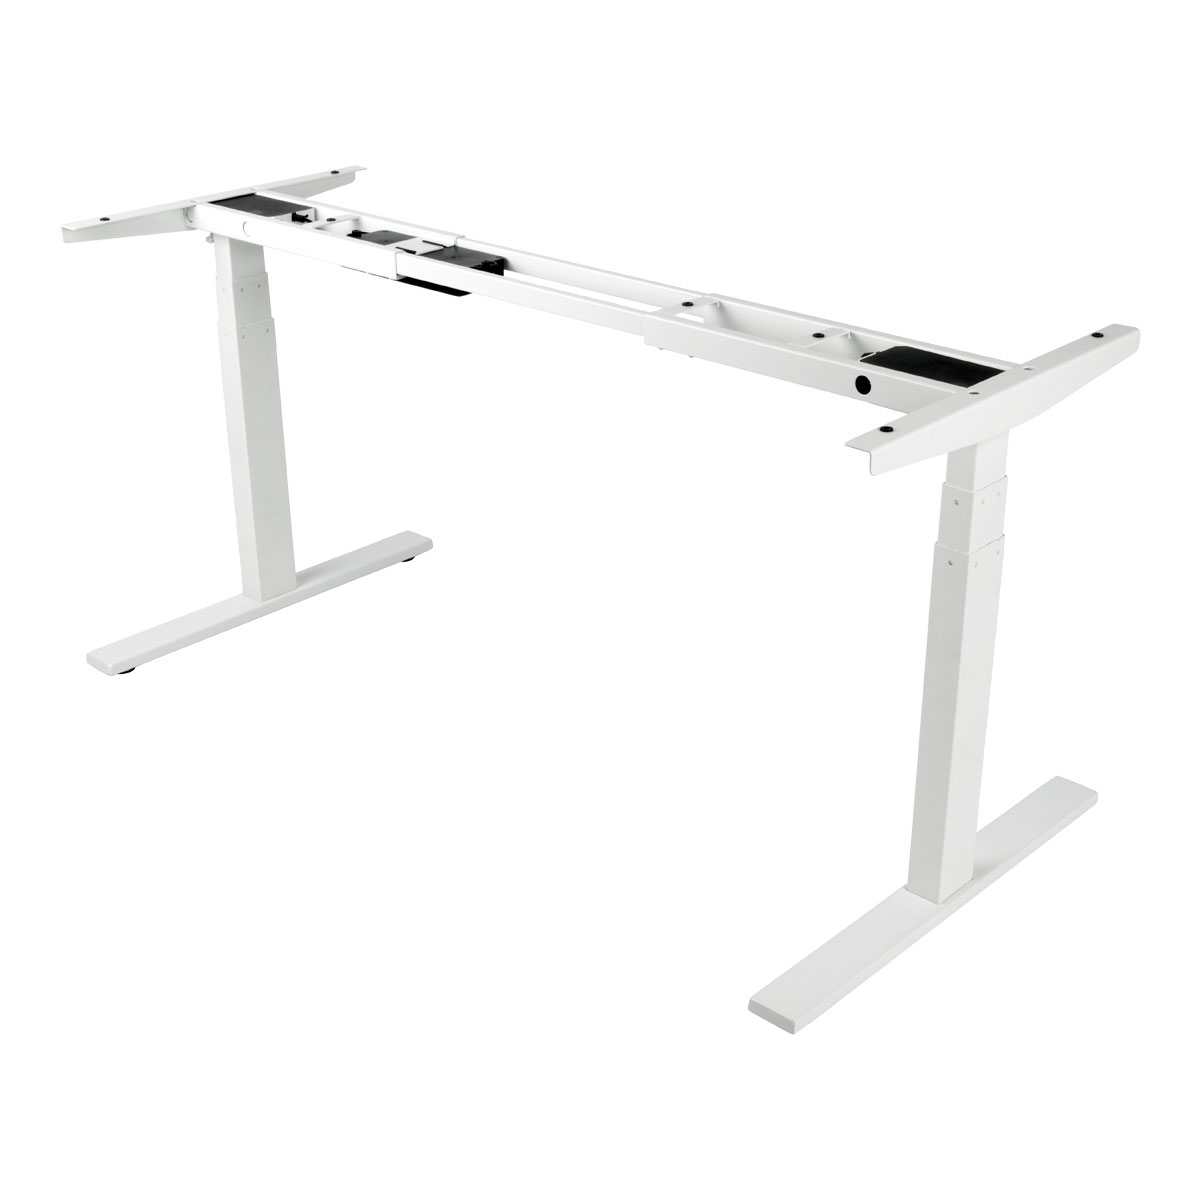 WORKWISE STANDING DESK BASE ELECTRIC ADJUSTABLE-HEIGHT WHITE.FOR HEIGHT ADJUST